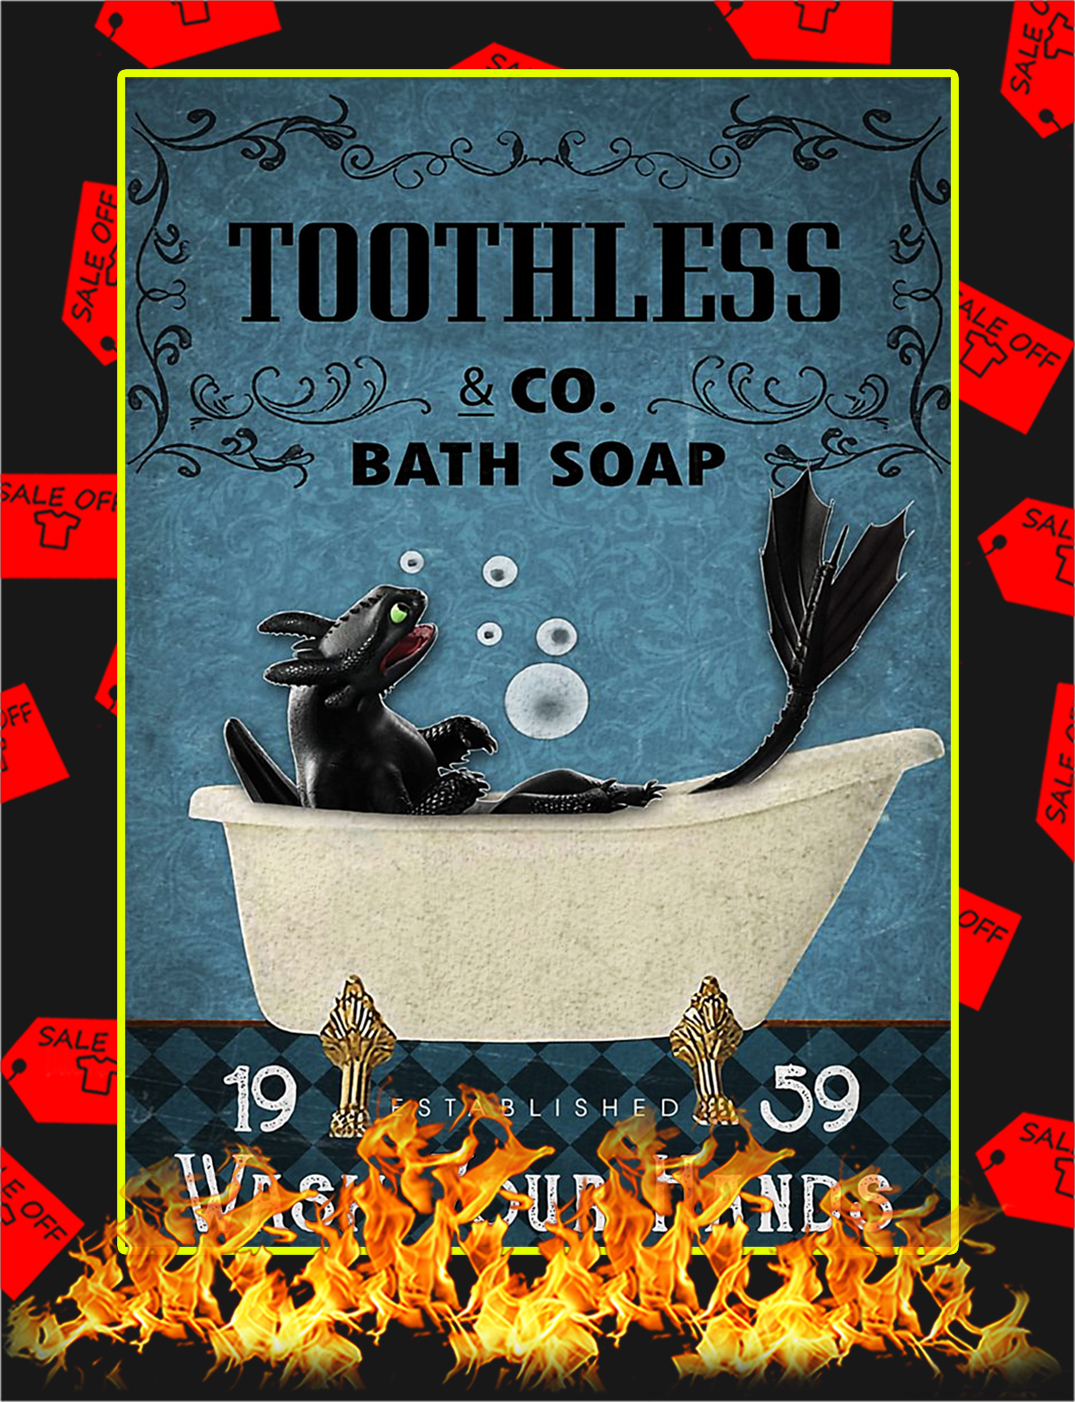 Bath soap company Toothless poster - A4